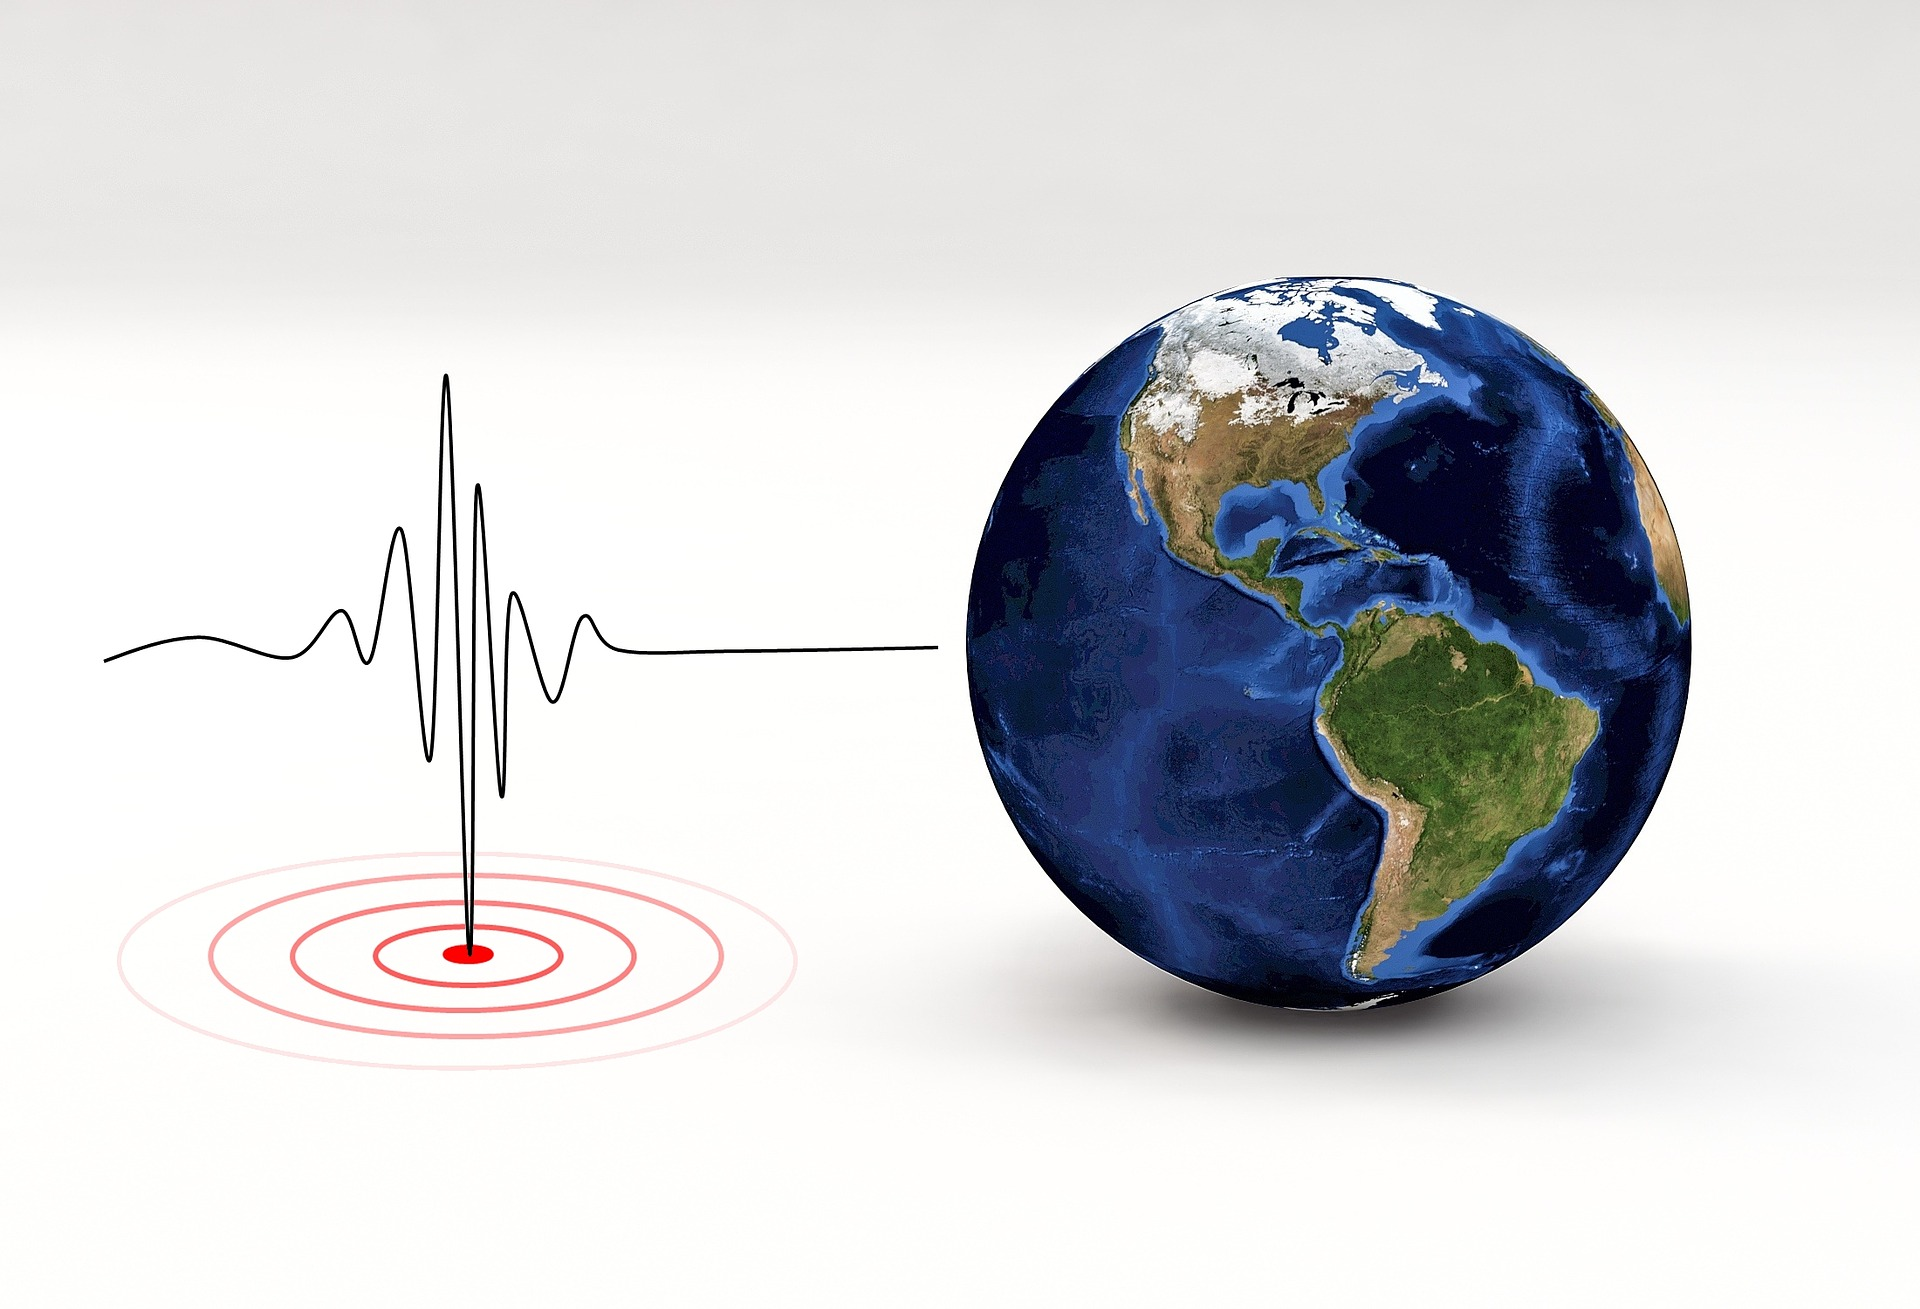 Earthquake Hits The Eastern Area Of Town With A 2.2 Magnitude